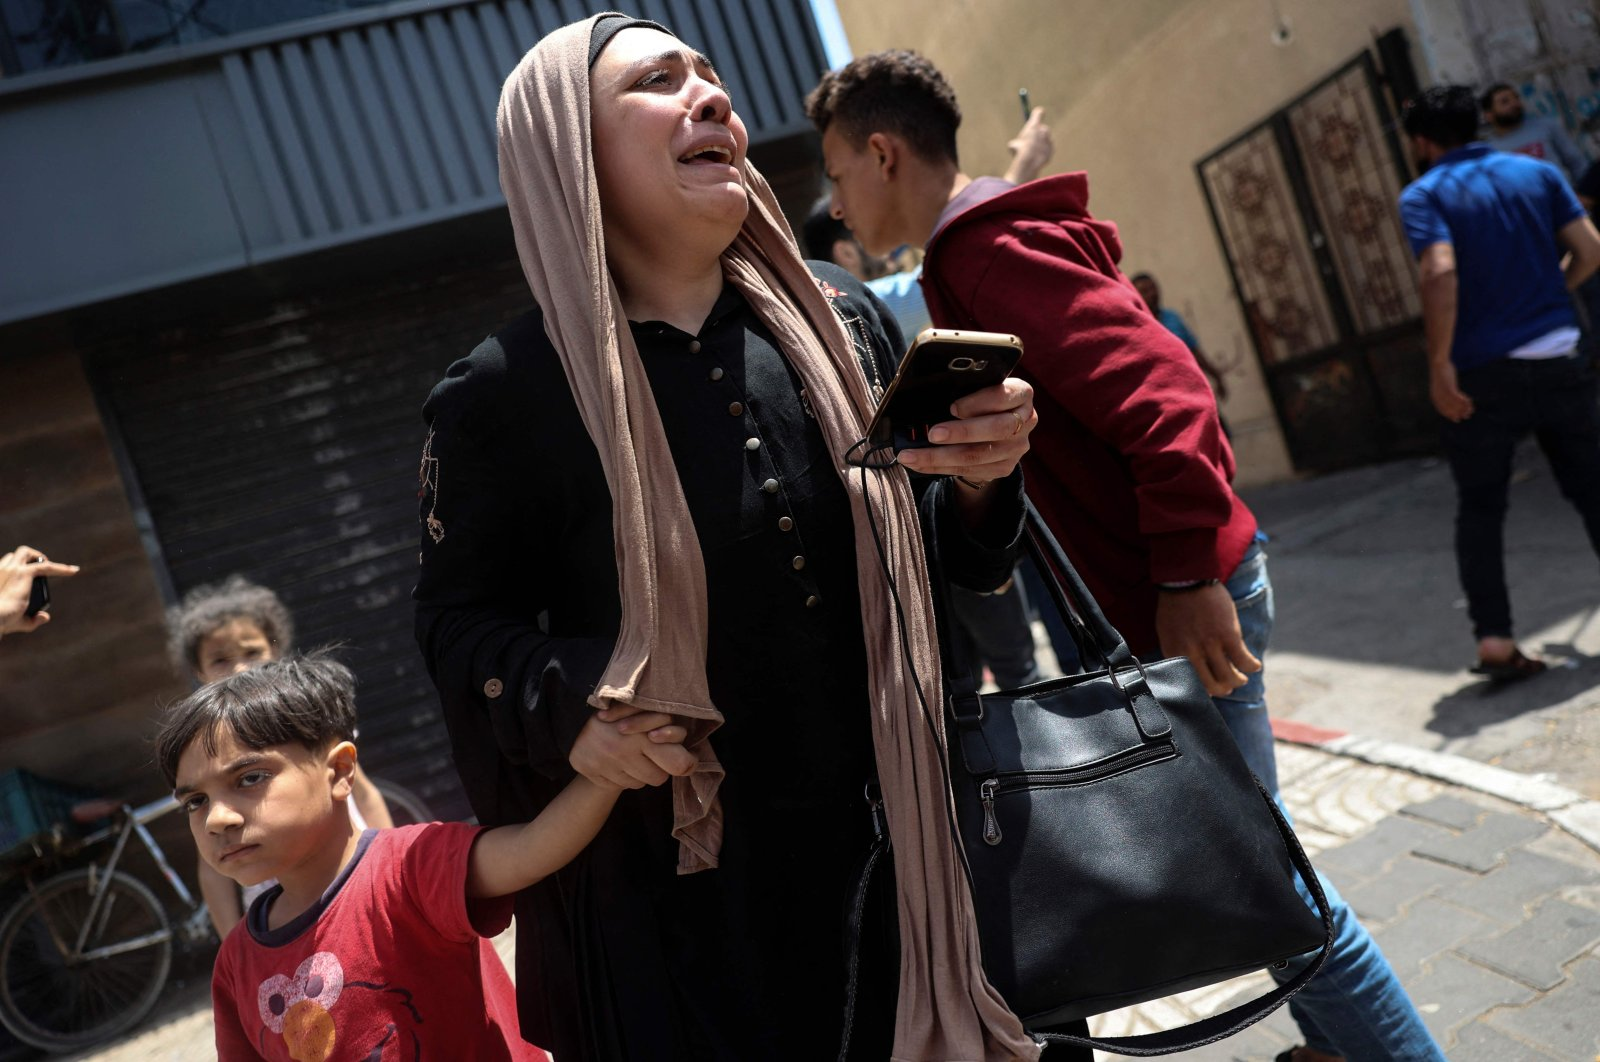 A Palestinian woman cries as she evacuates a building targeted by Israeli bombardment on Gaza City, Palestine, May 11, 2021. (AFP Photo)